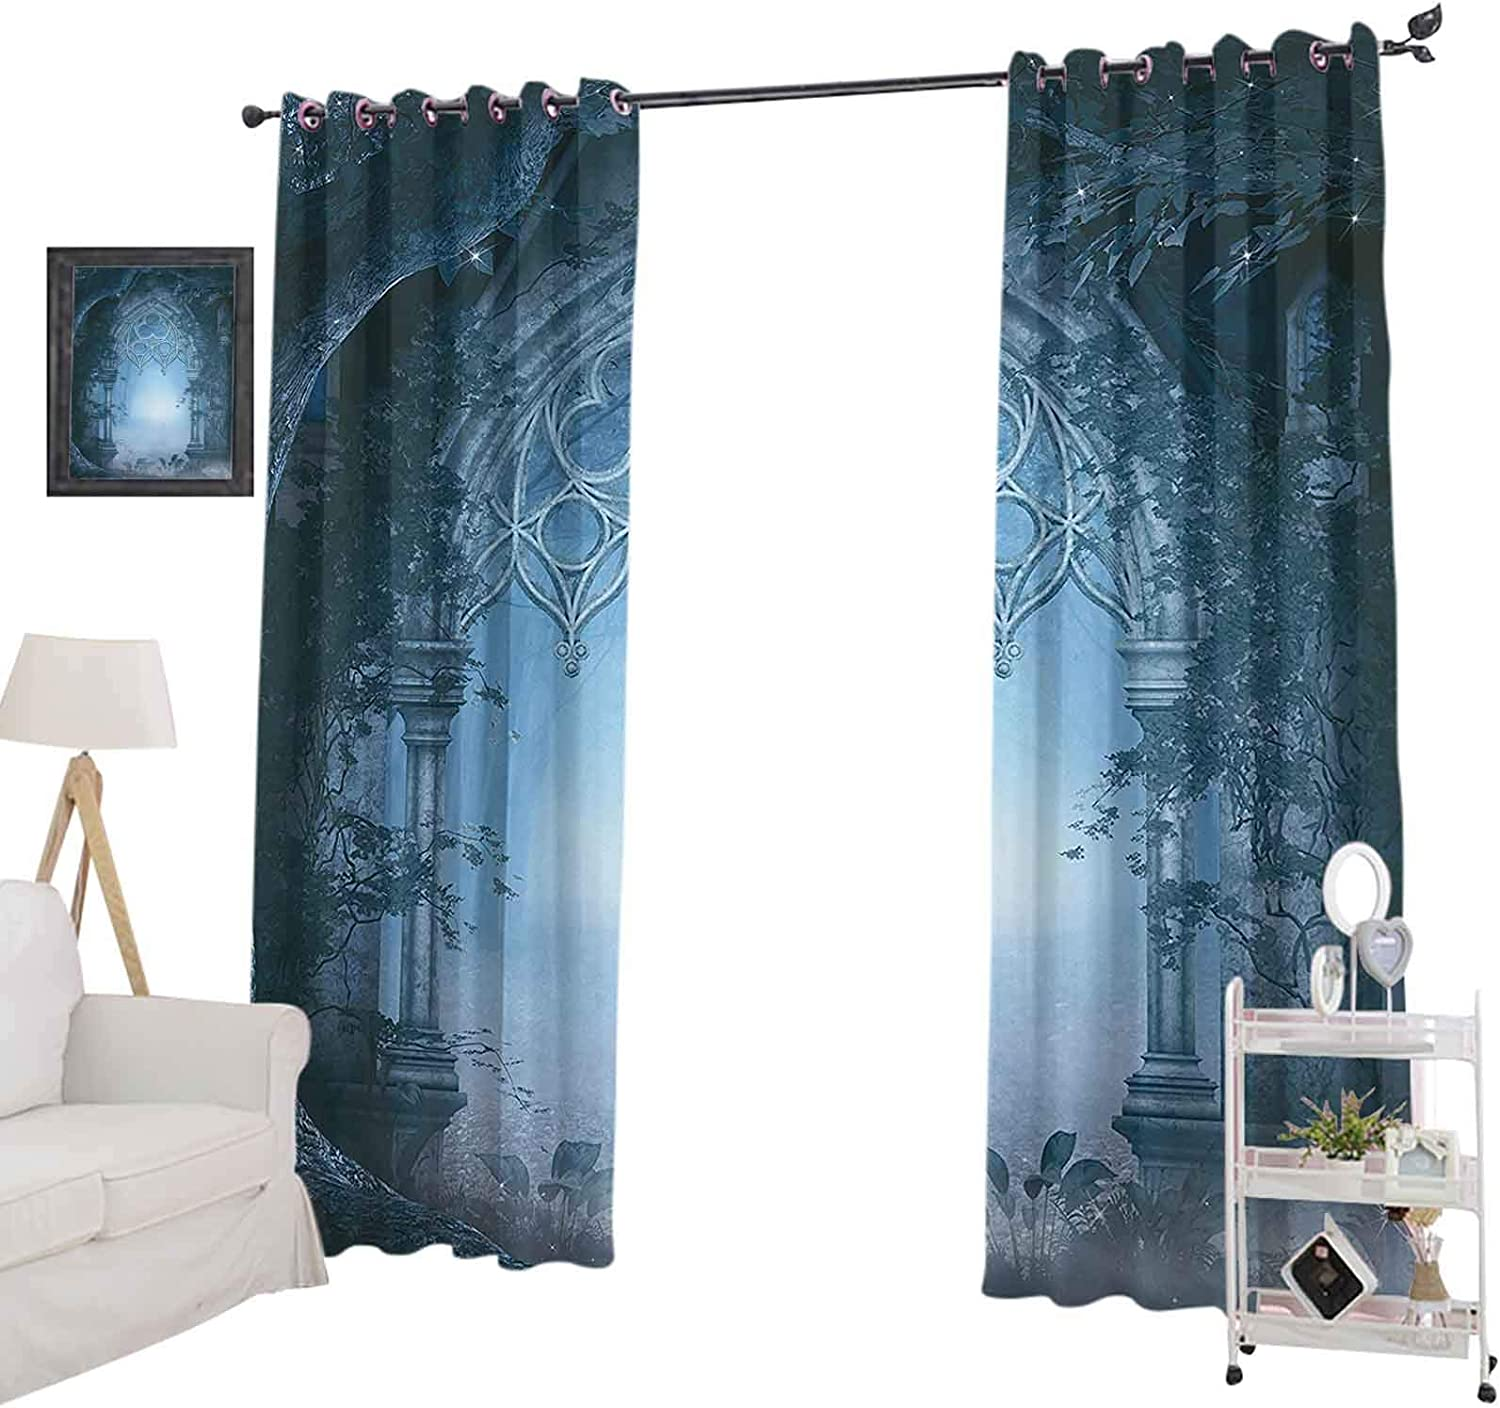 """YUAZHOQI Window Curtain Drape Passage Doorway Through Enchanted Foggy Magical Palace Garden at Night View Blackout Curtains for Kids Bedroom 52"""" x 95"""" Navy Blue and Gray"""